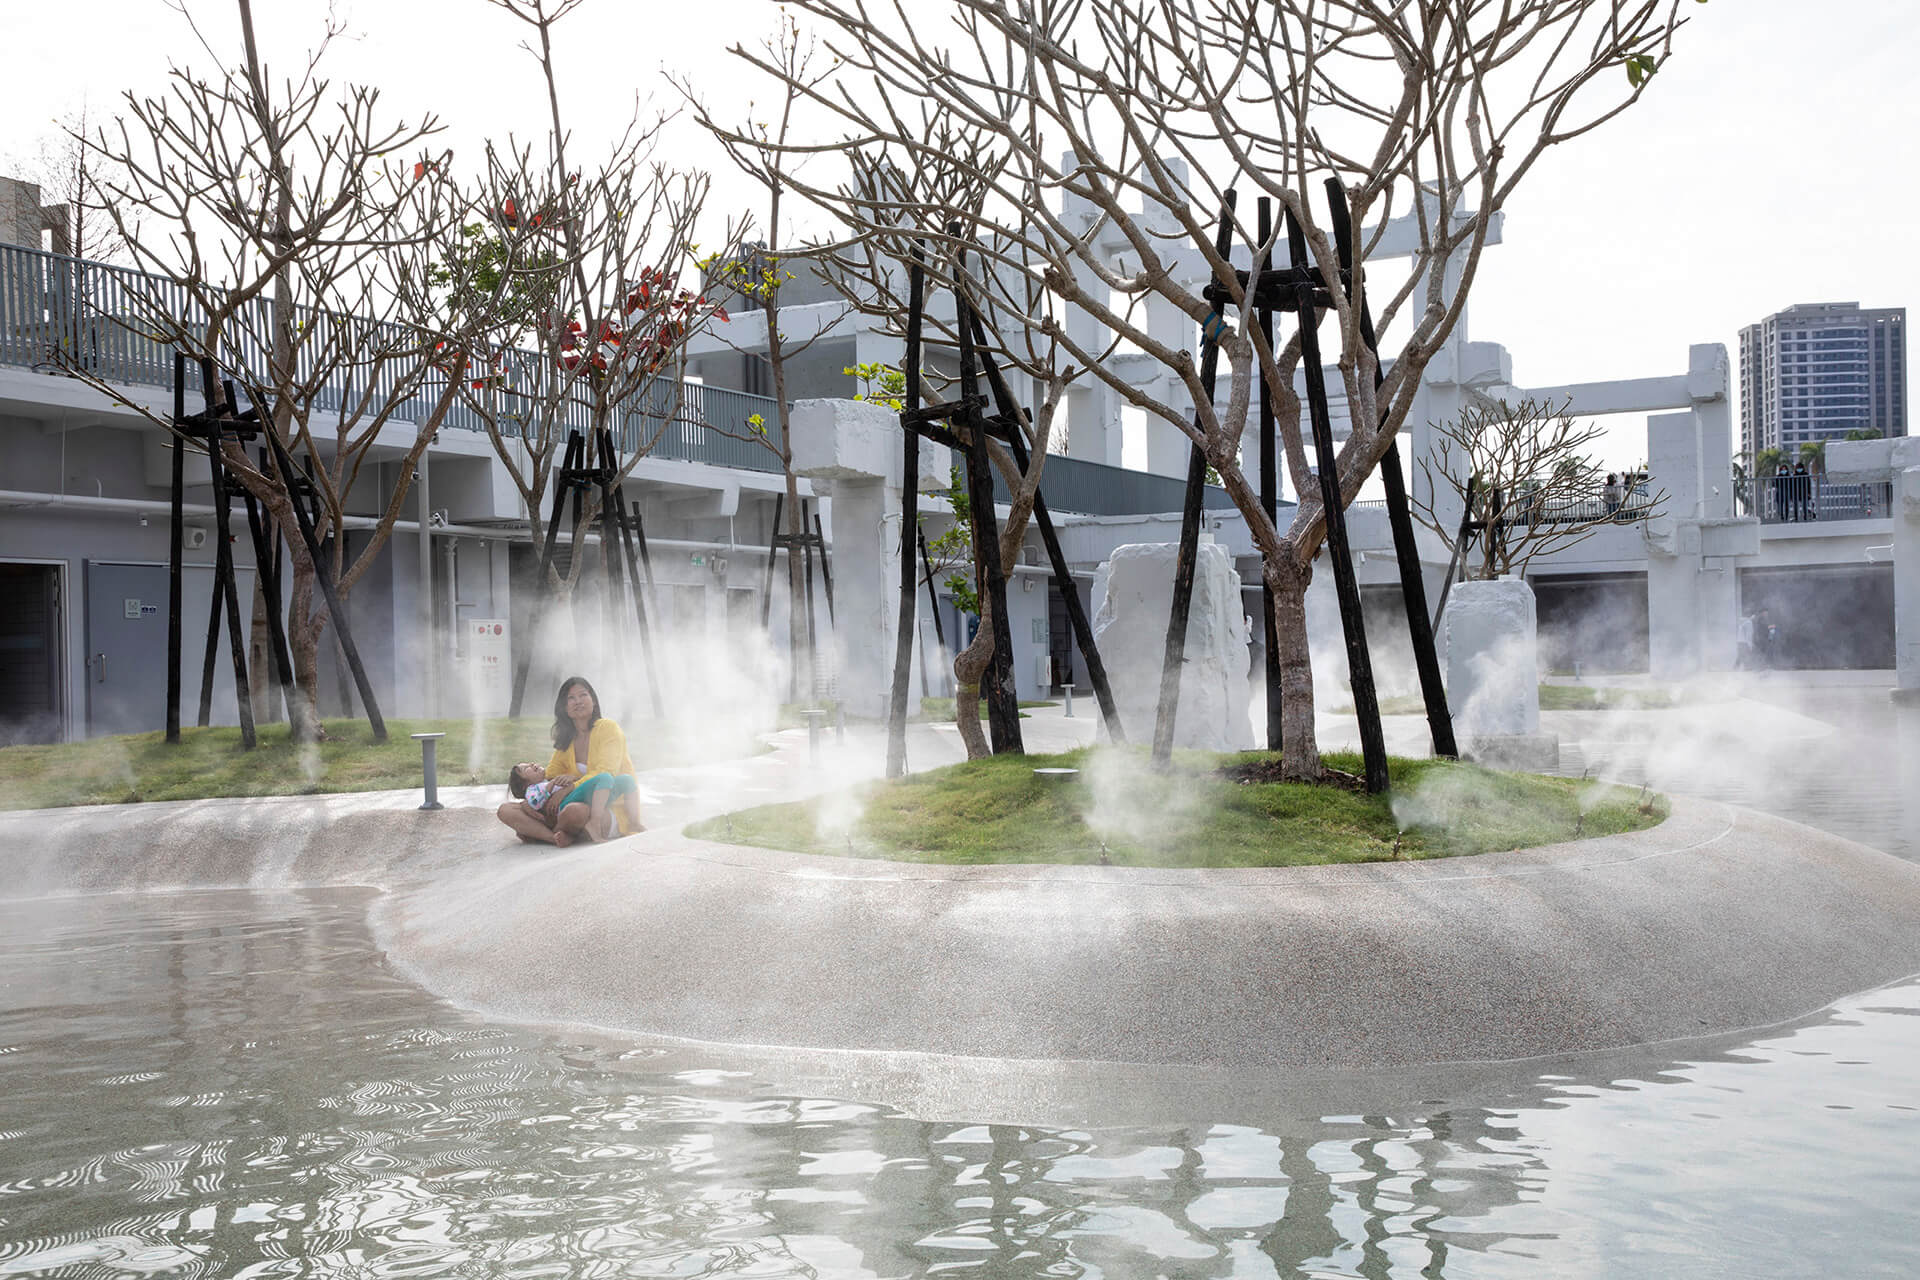 The public pool's water level will vary according to passing seasons | MVRDV's Tainan Spring is an urban lagoon in Tainan, Taiwan | STIRworld